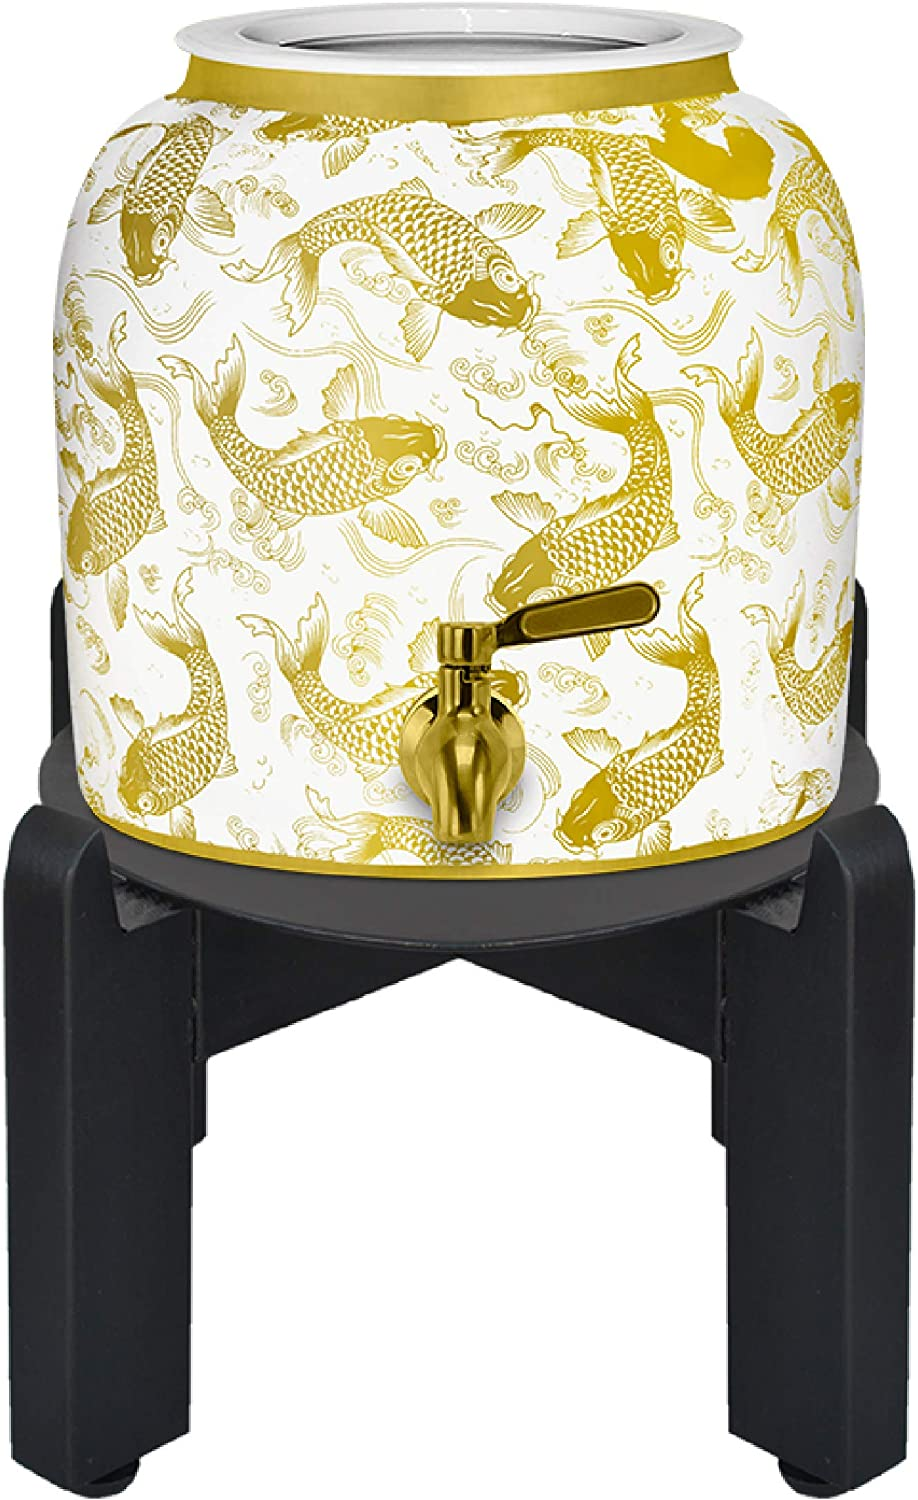 Geo Sports Porcelain Crock Water Dispenser (Shiny Series) w/ 8 Inch Wood Stand, Ceramic Lid Included (Shiny Gold Fish Design)